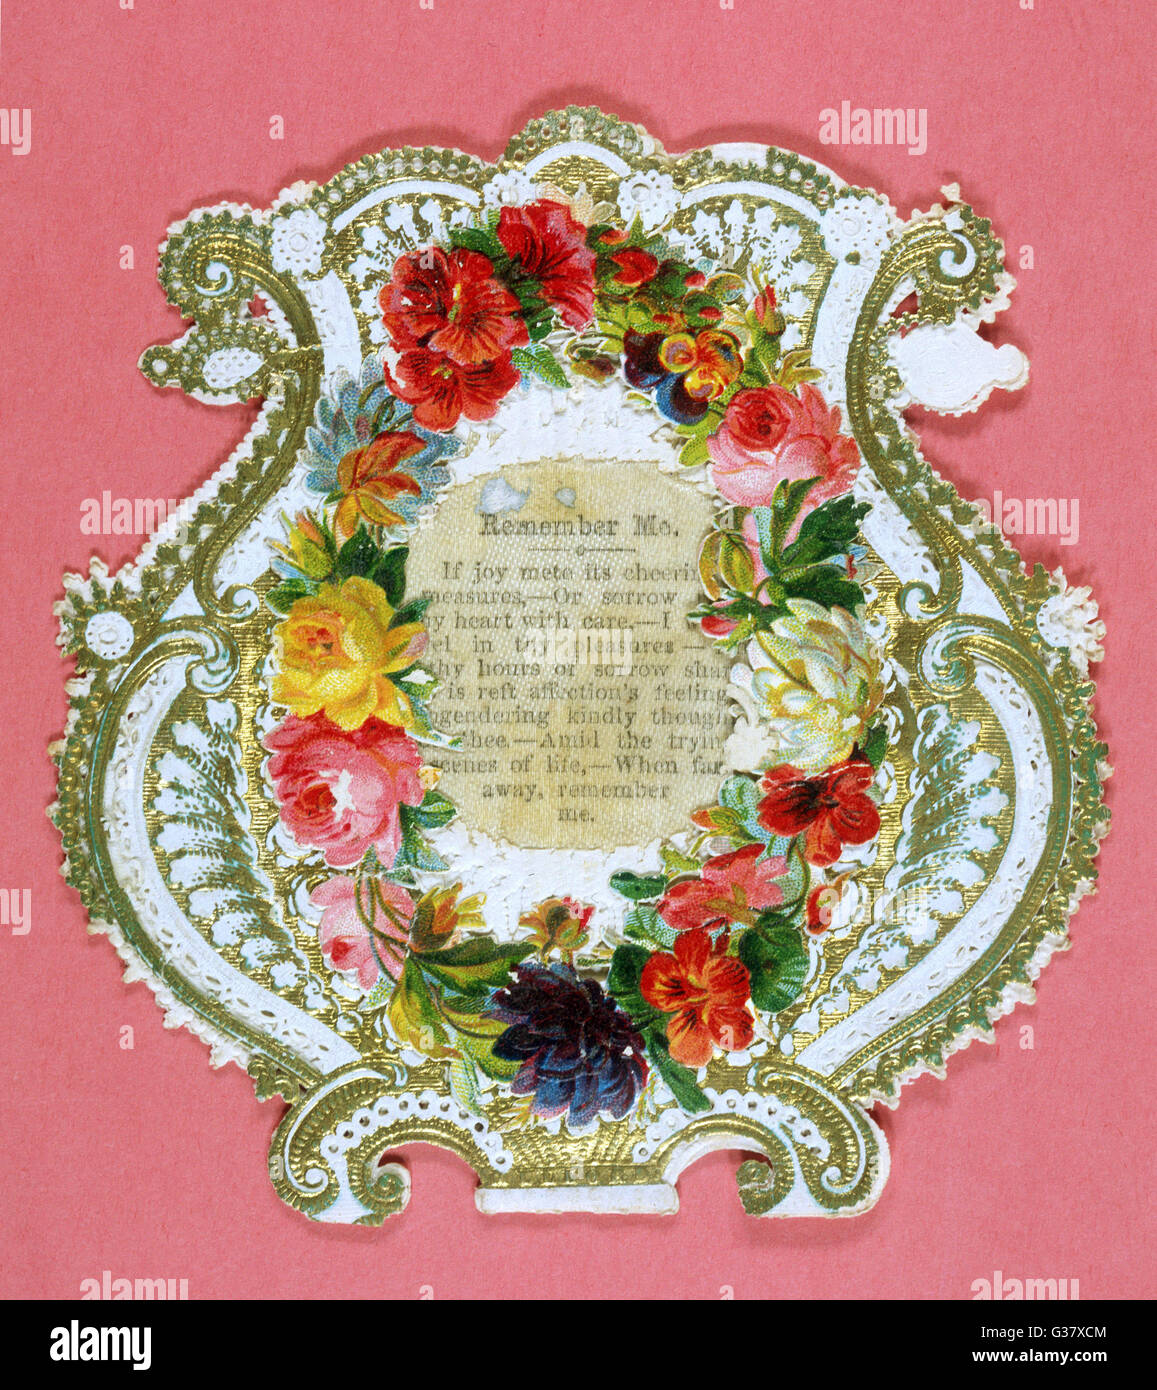 'Remember me' - a rather wordy  text in lyre-shaped floral  frame        Date: circa 1870 - Stock Image